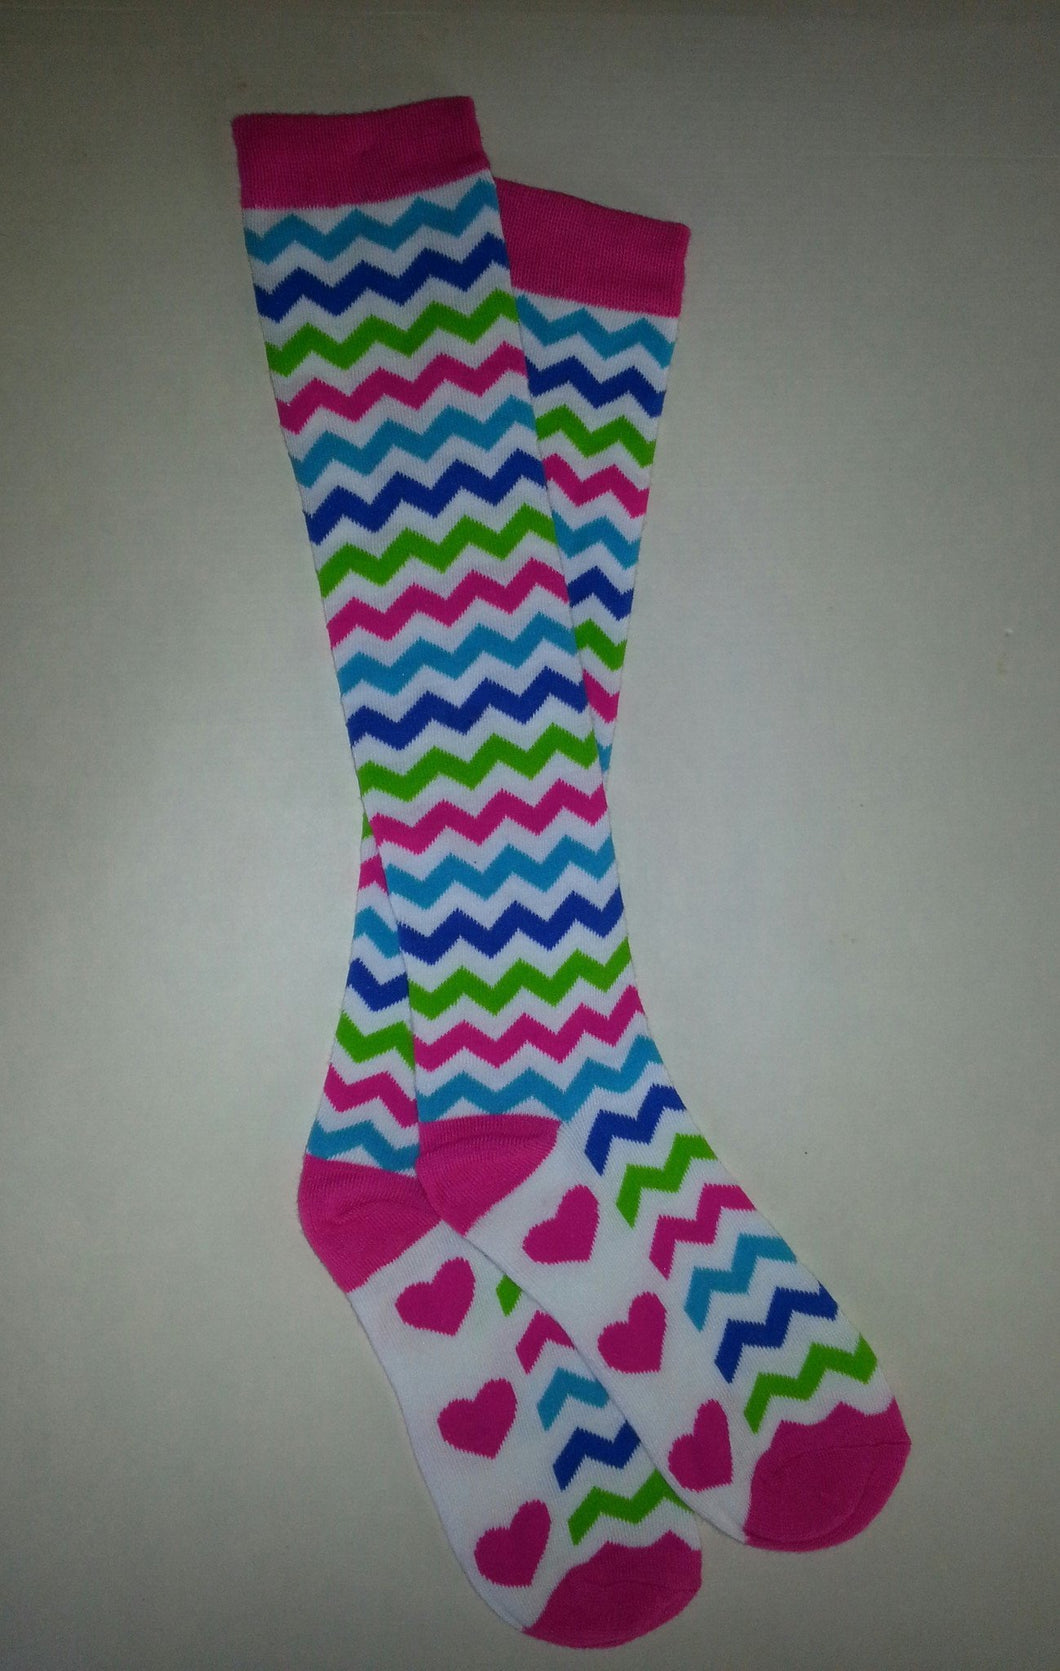 Zigzag Heart Knee High Socks